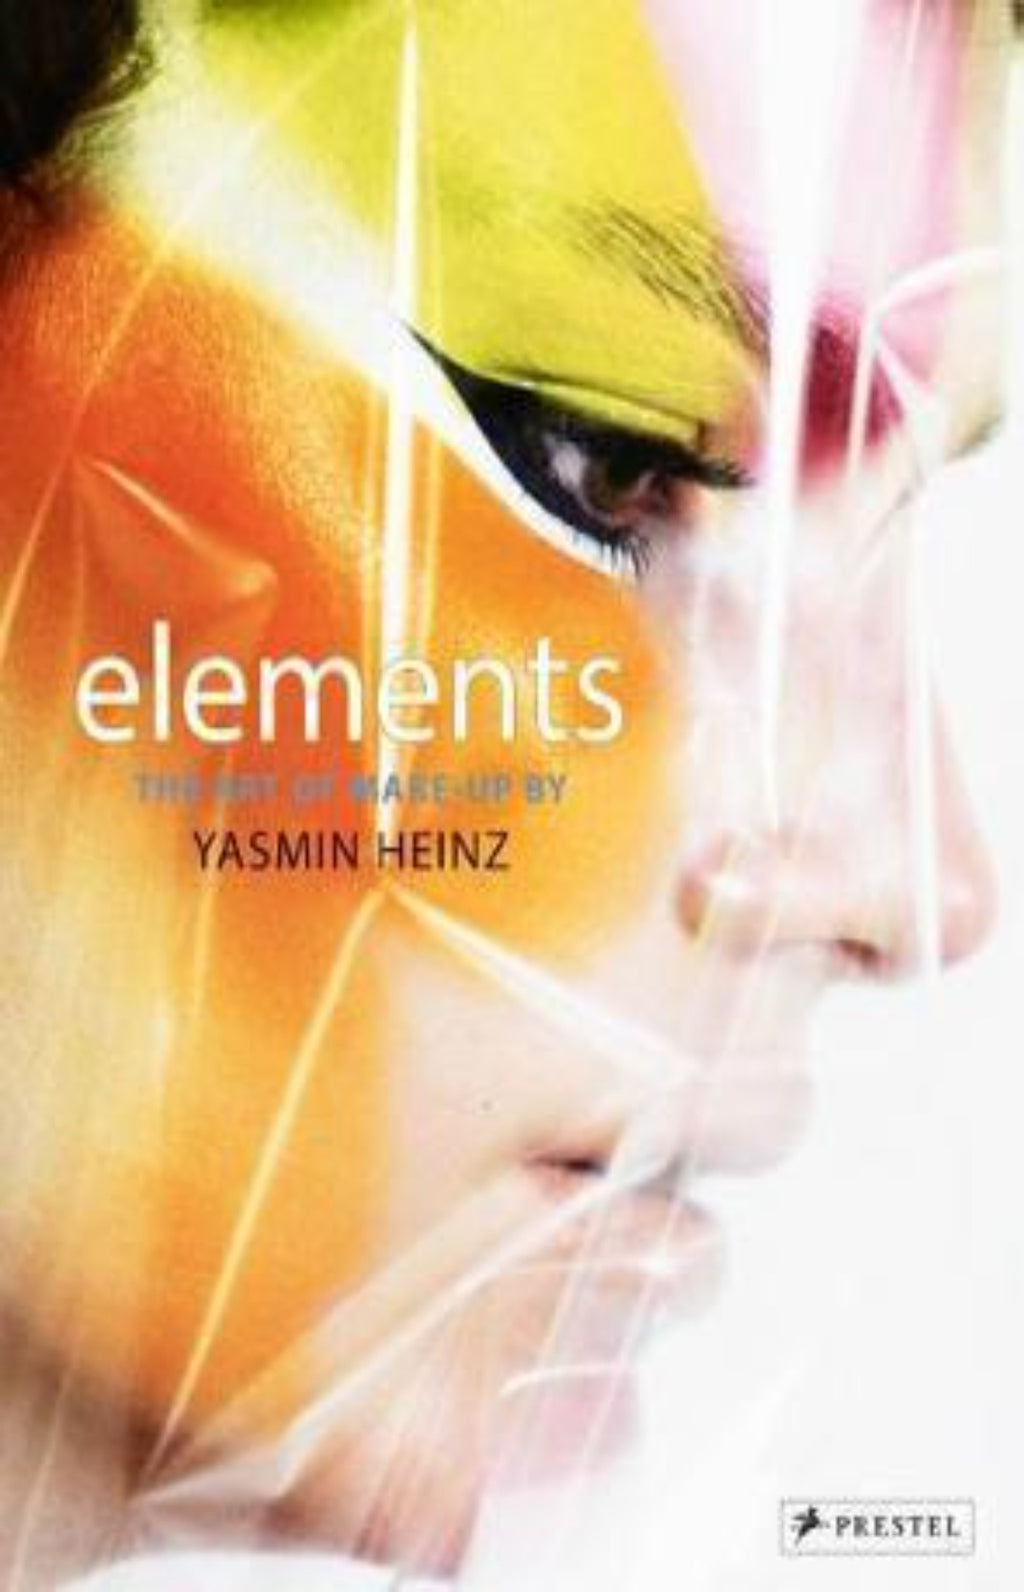 Elements : The Art of Make-Up by Yasmin Heinz